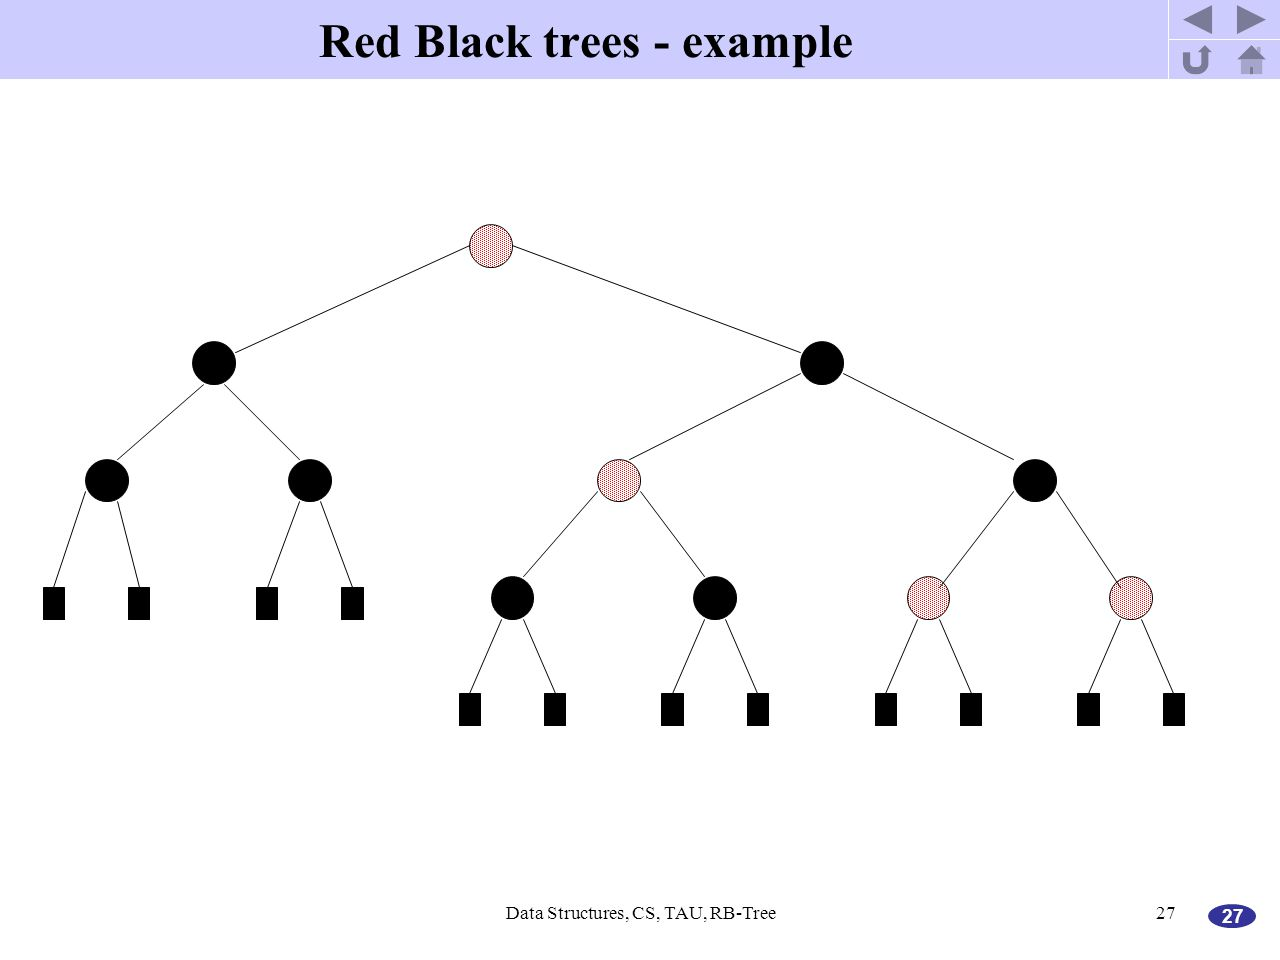 27 Data Structures, CS, TAU, RB-Tree27 Red Black trees - example